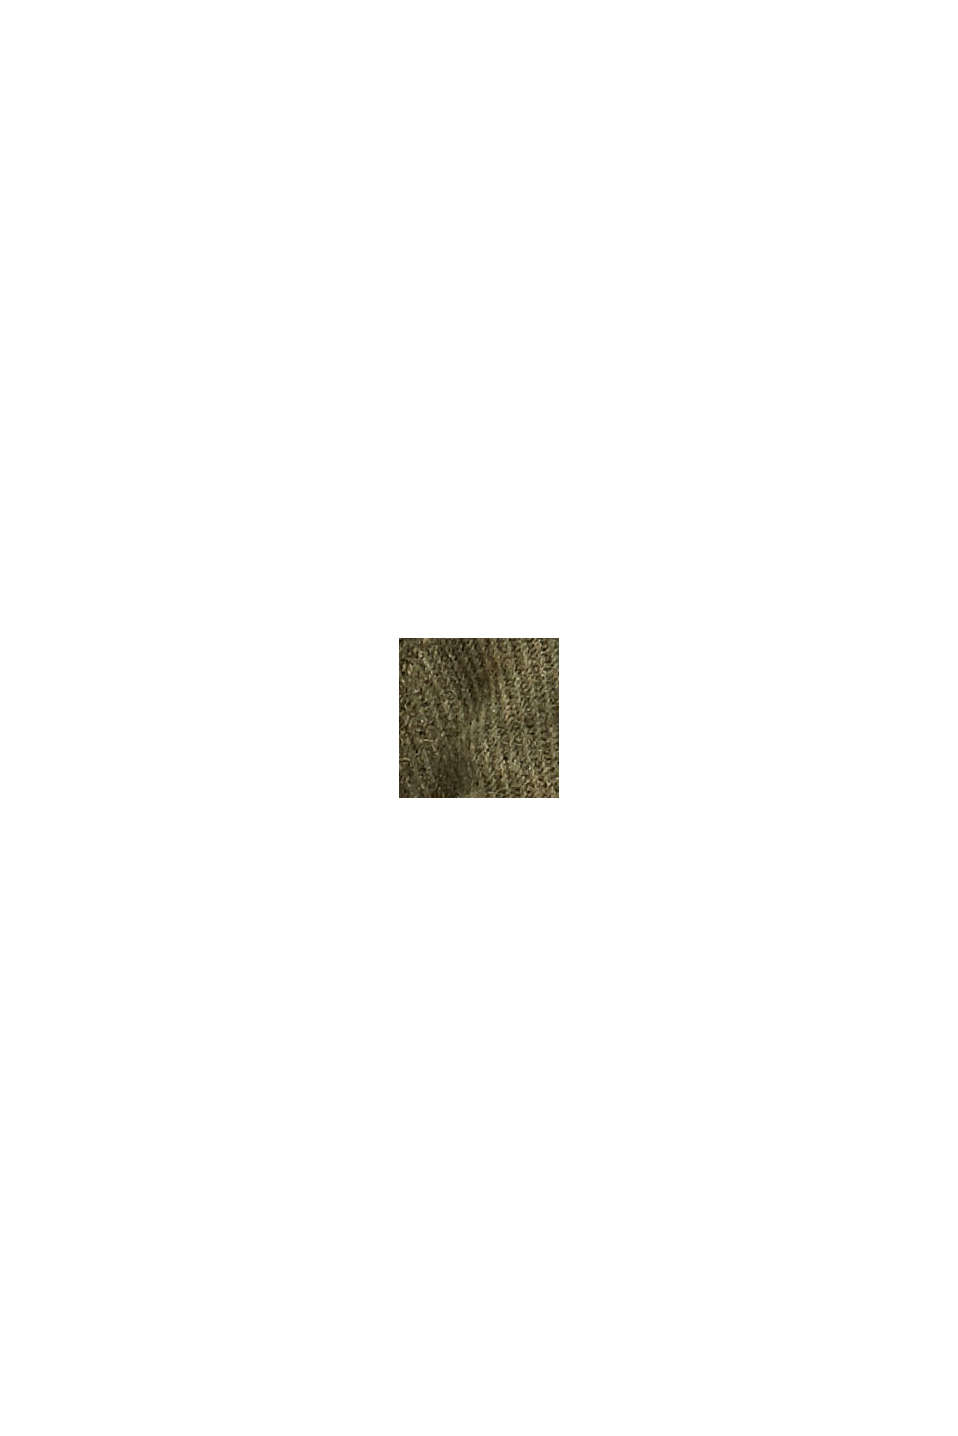 Woven scarf with stripes made with recycled material, DUSTY GREEN, swatch